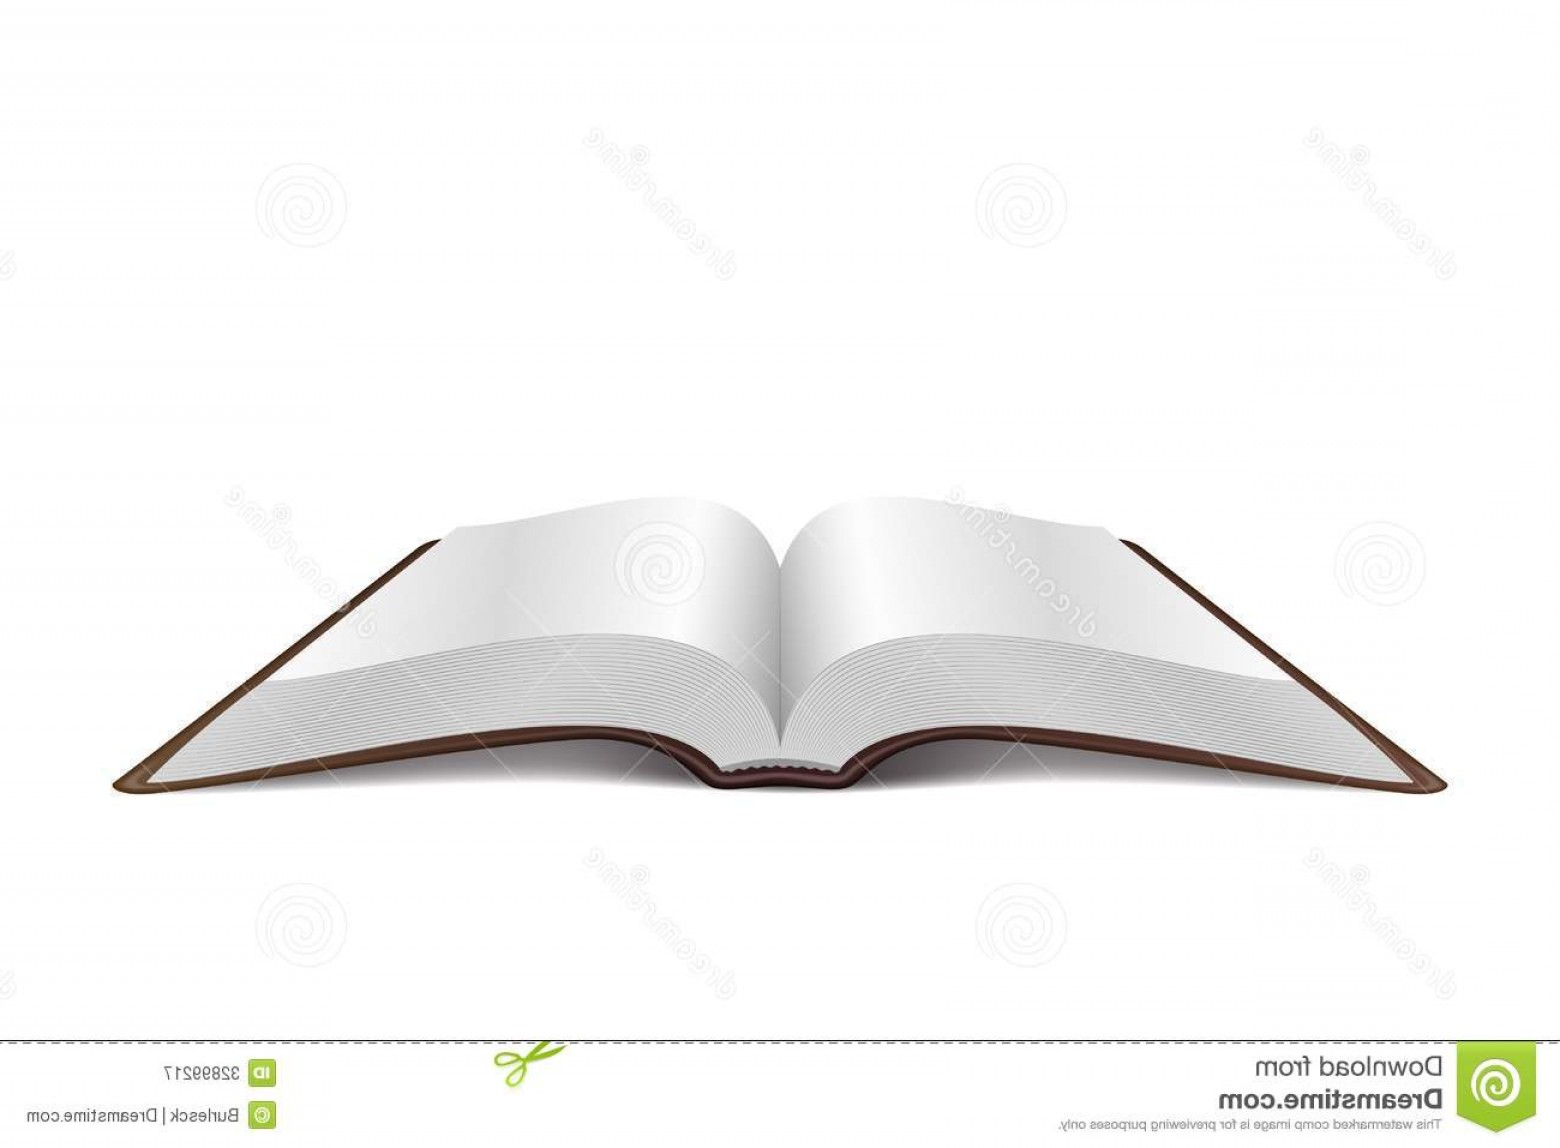 Open Book Vector Flat: Royalty Free Stock Photography Open Book Vector Illustration Isolated White Background Image